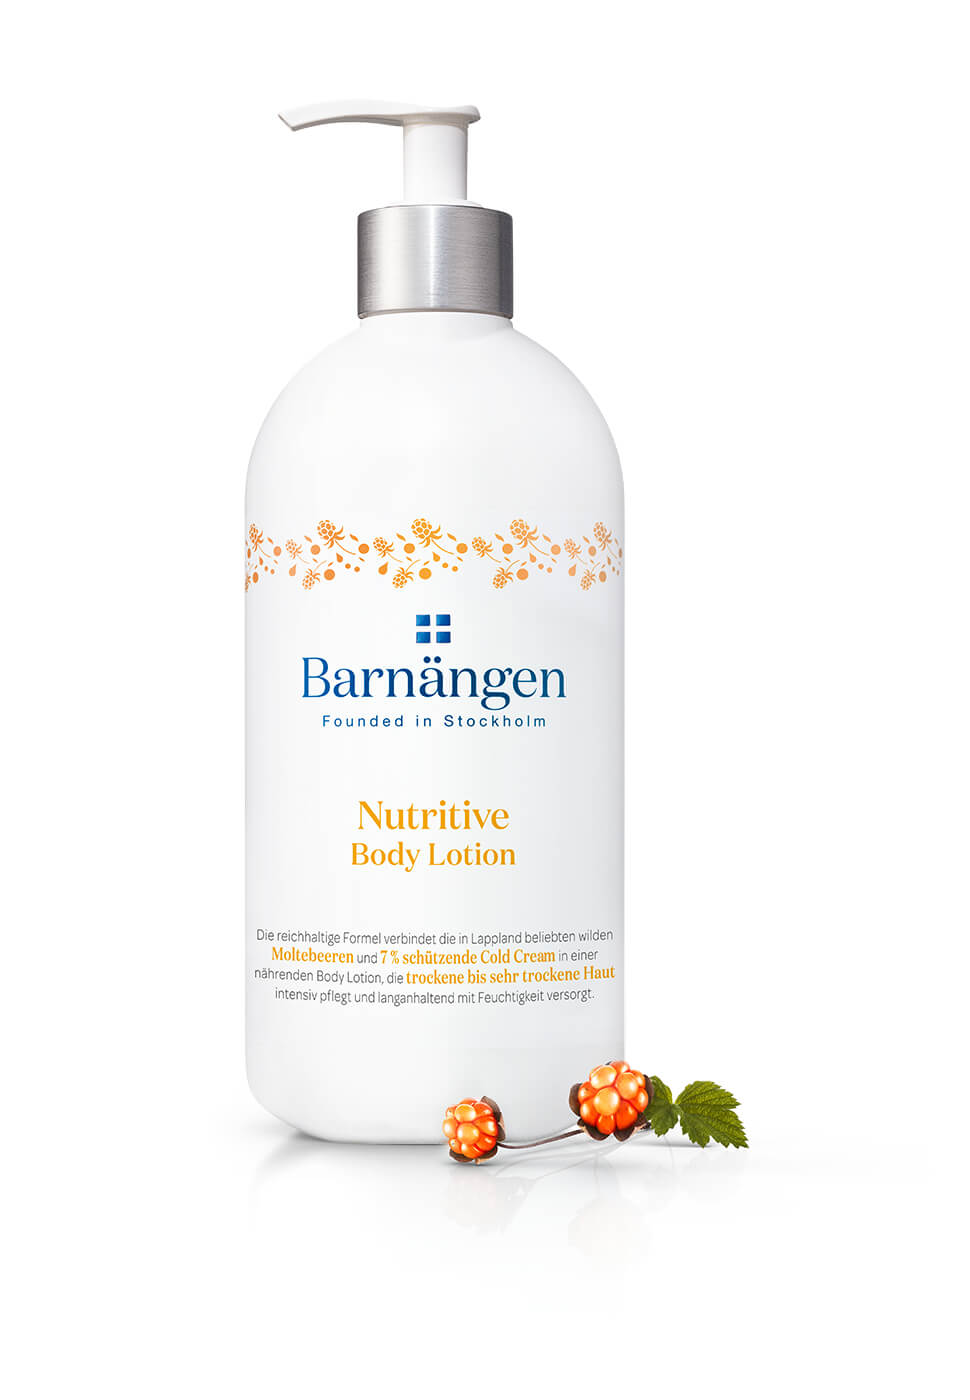 barnangen_de_nordic_care_nutritive_body_lotion_970x1400